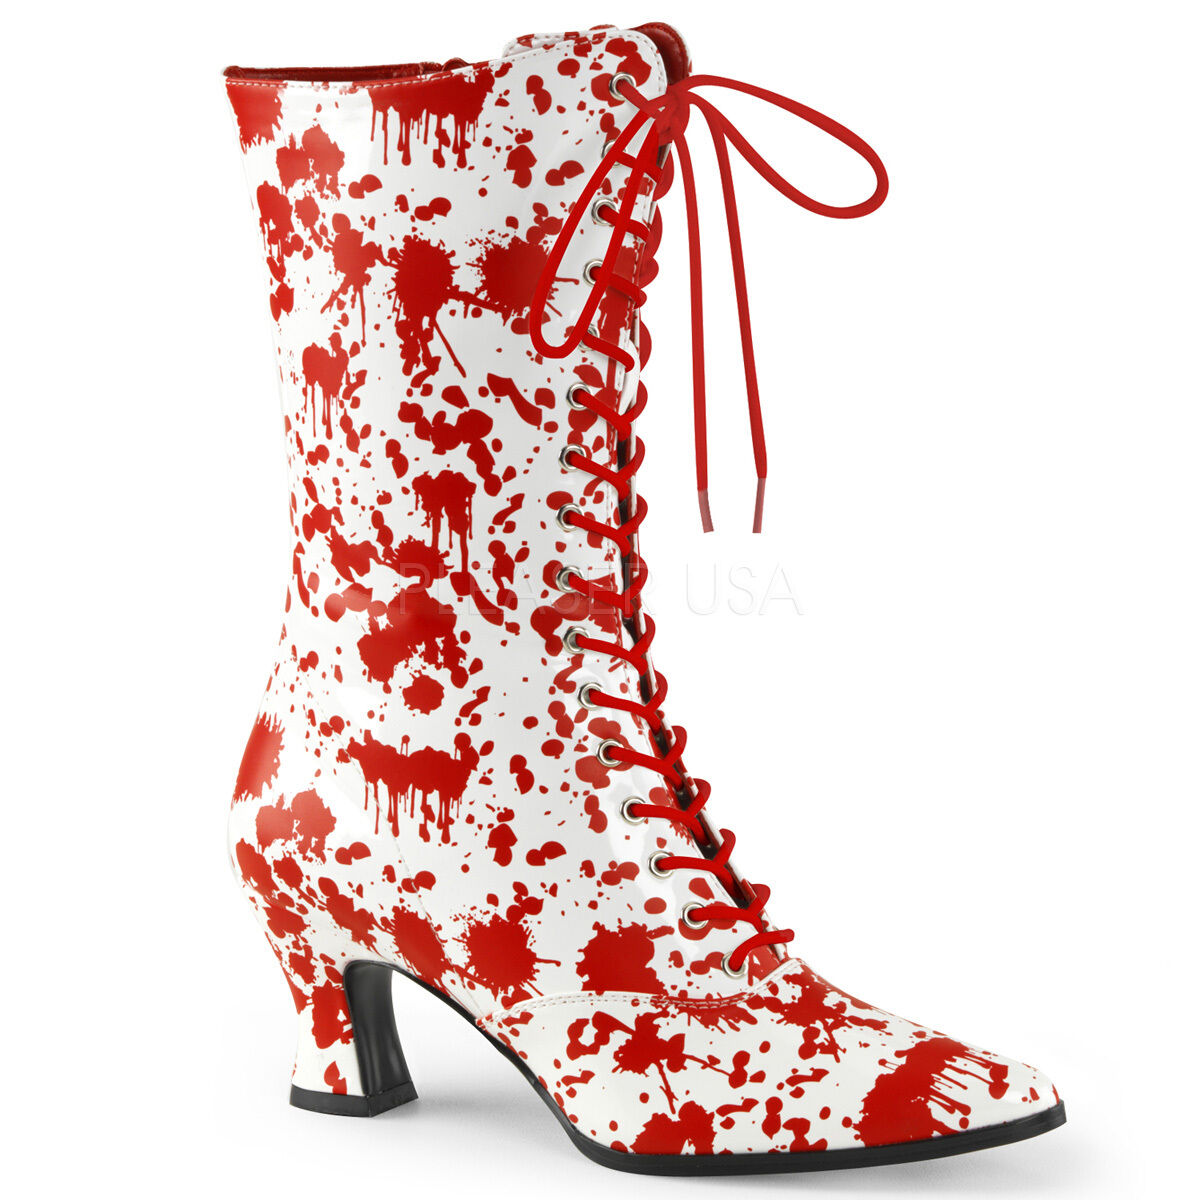 VIC120BL/W-R Women's Old Fashioned Victorian Blood Splatter Zombie Costume Boots